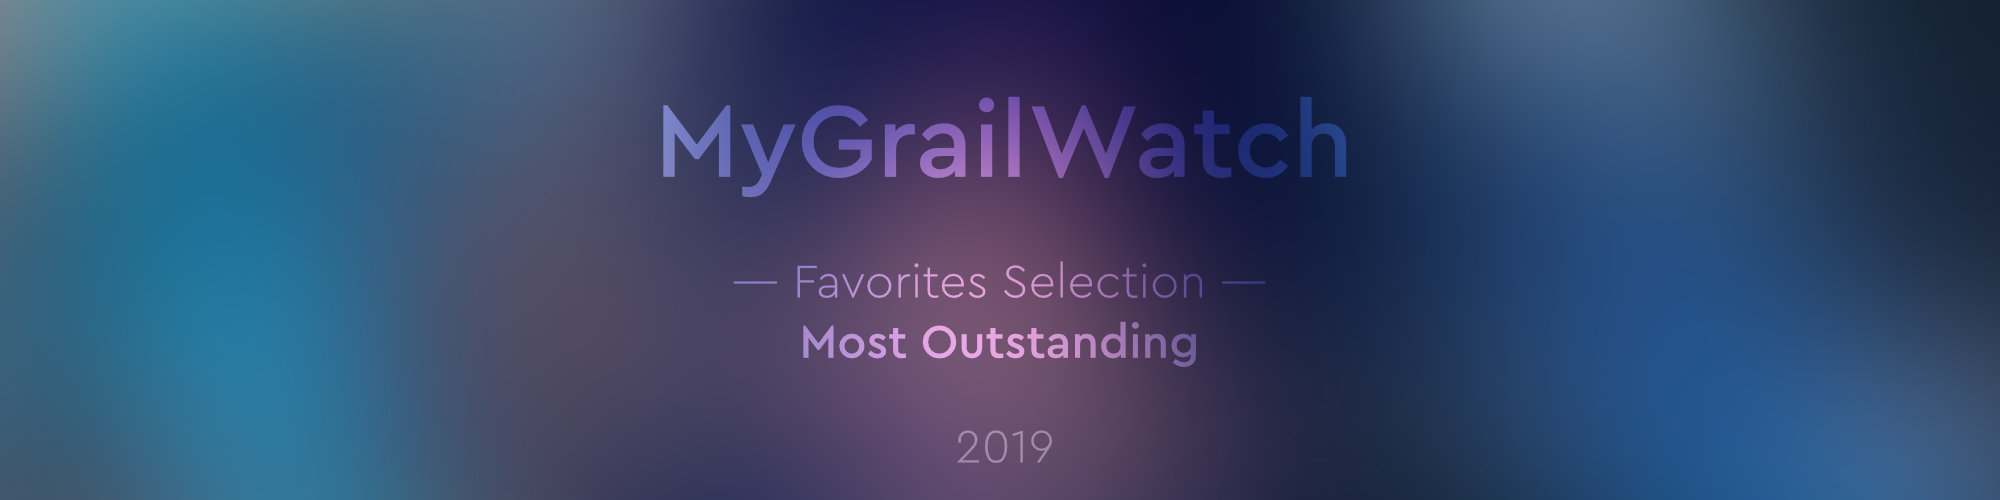 mgw favorites selection most outstanding 2019